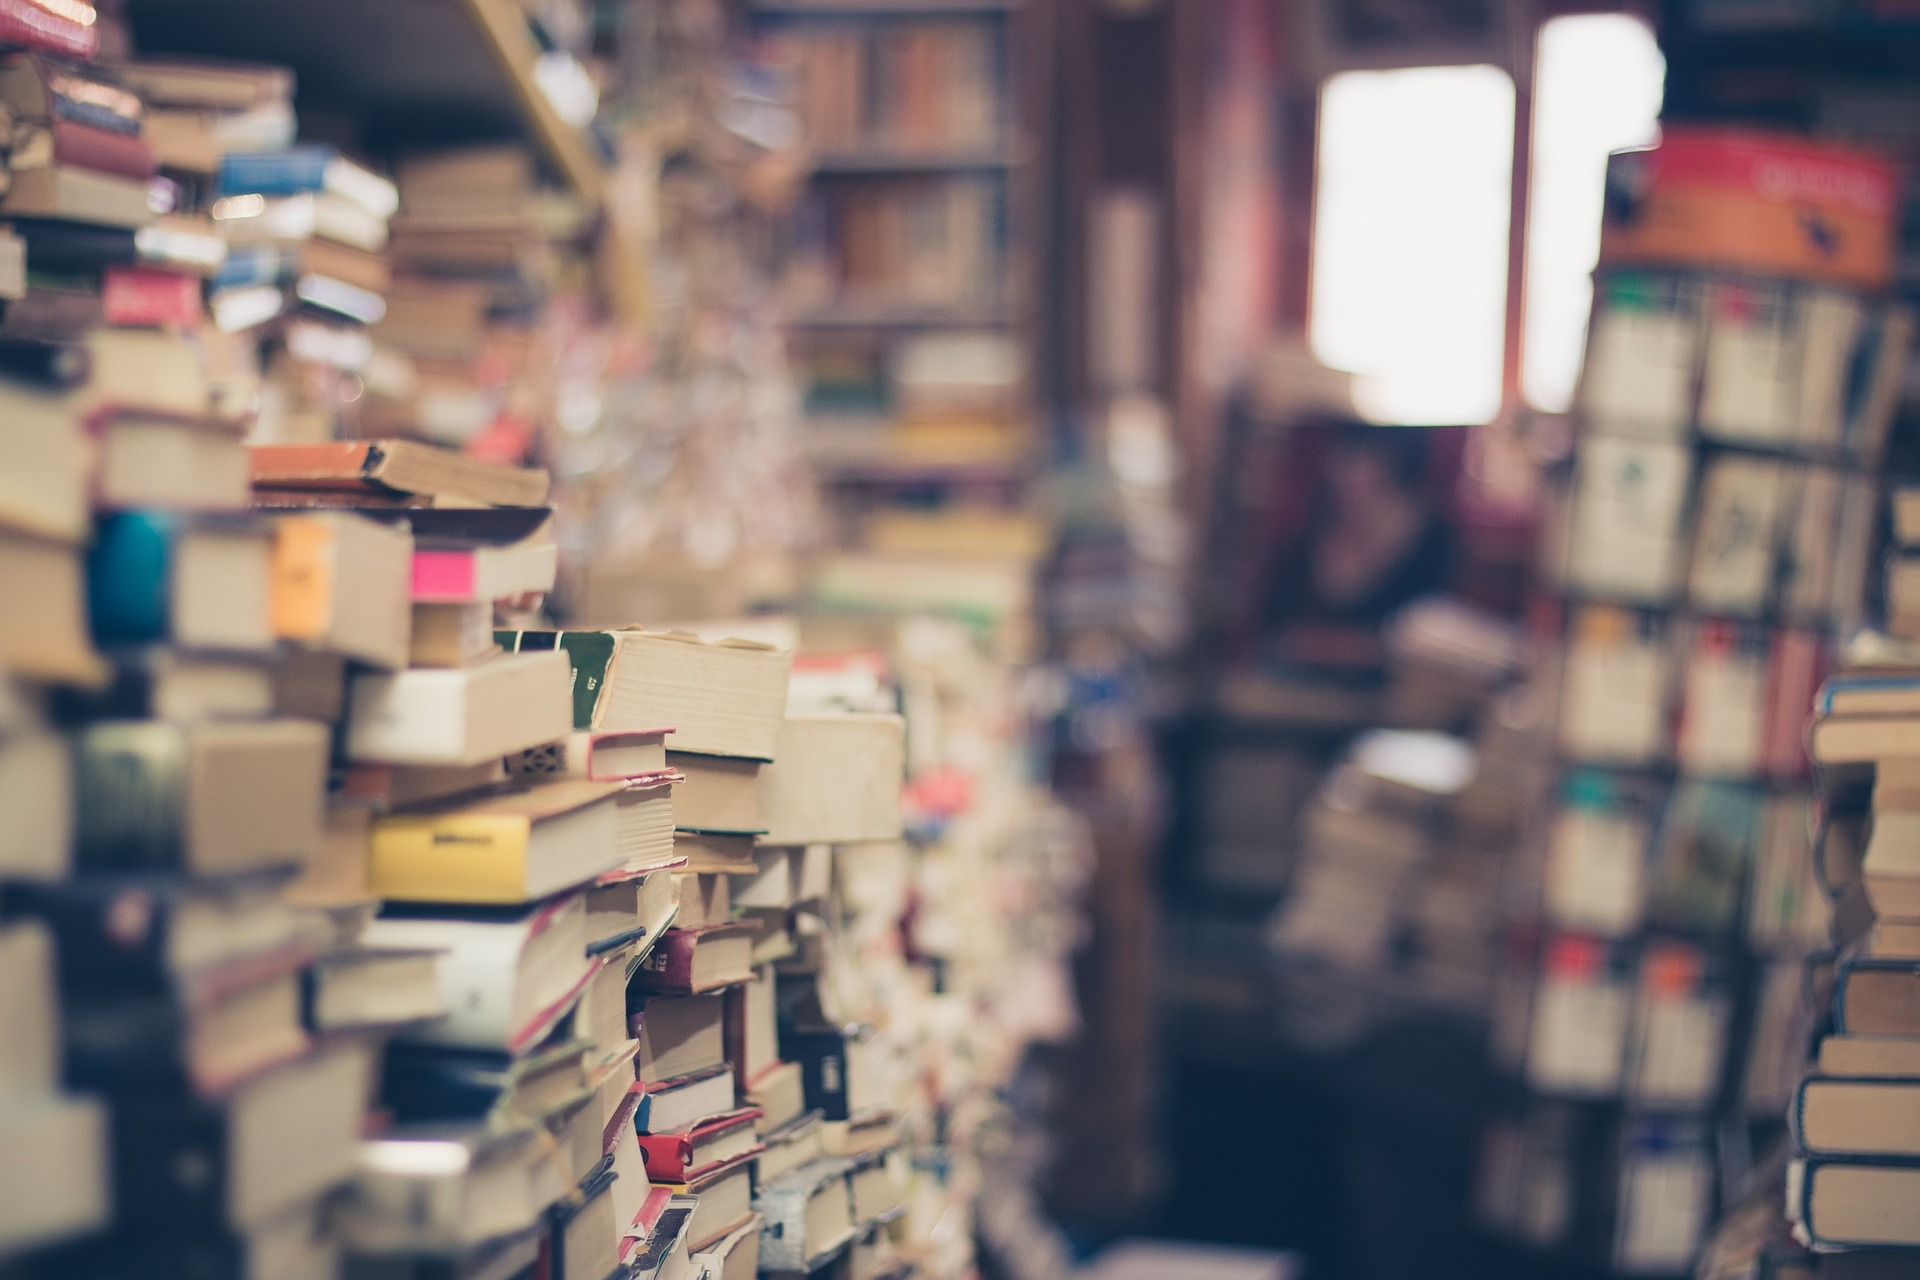 image of books stacked on one another into the distance